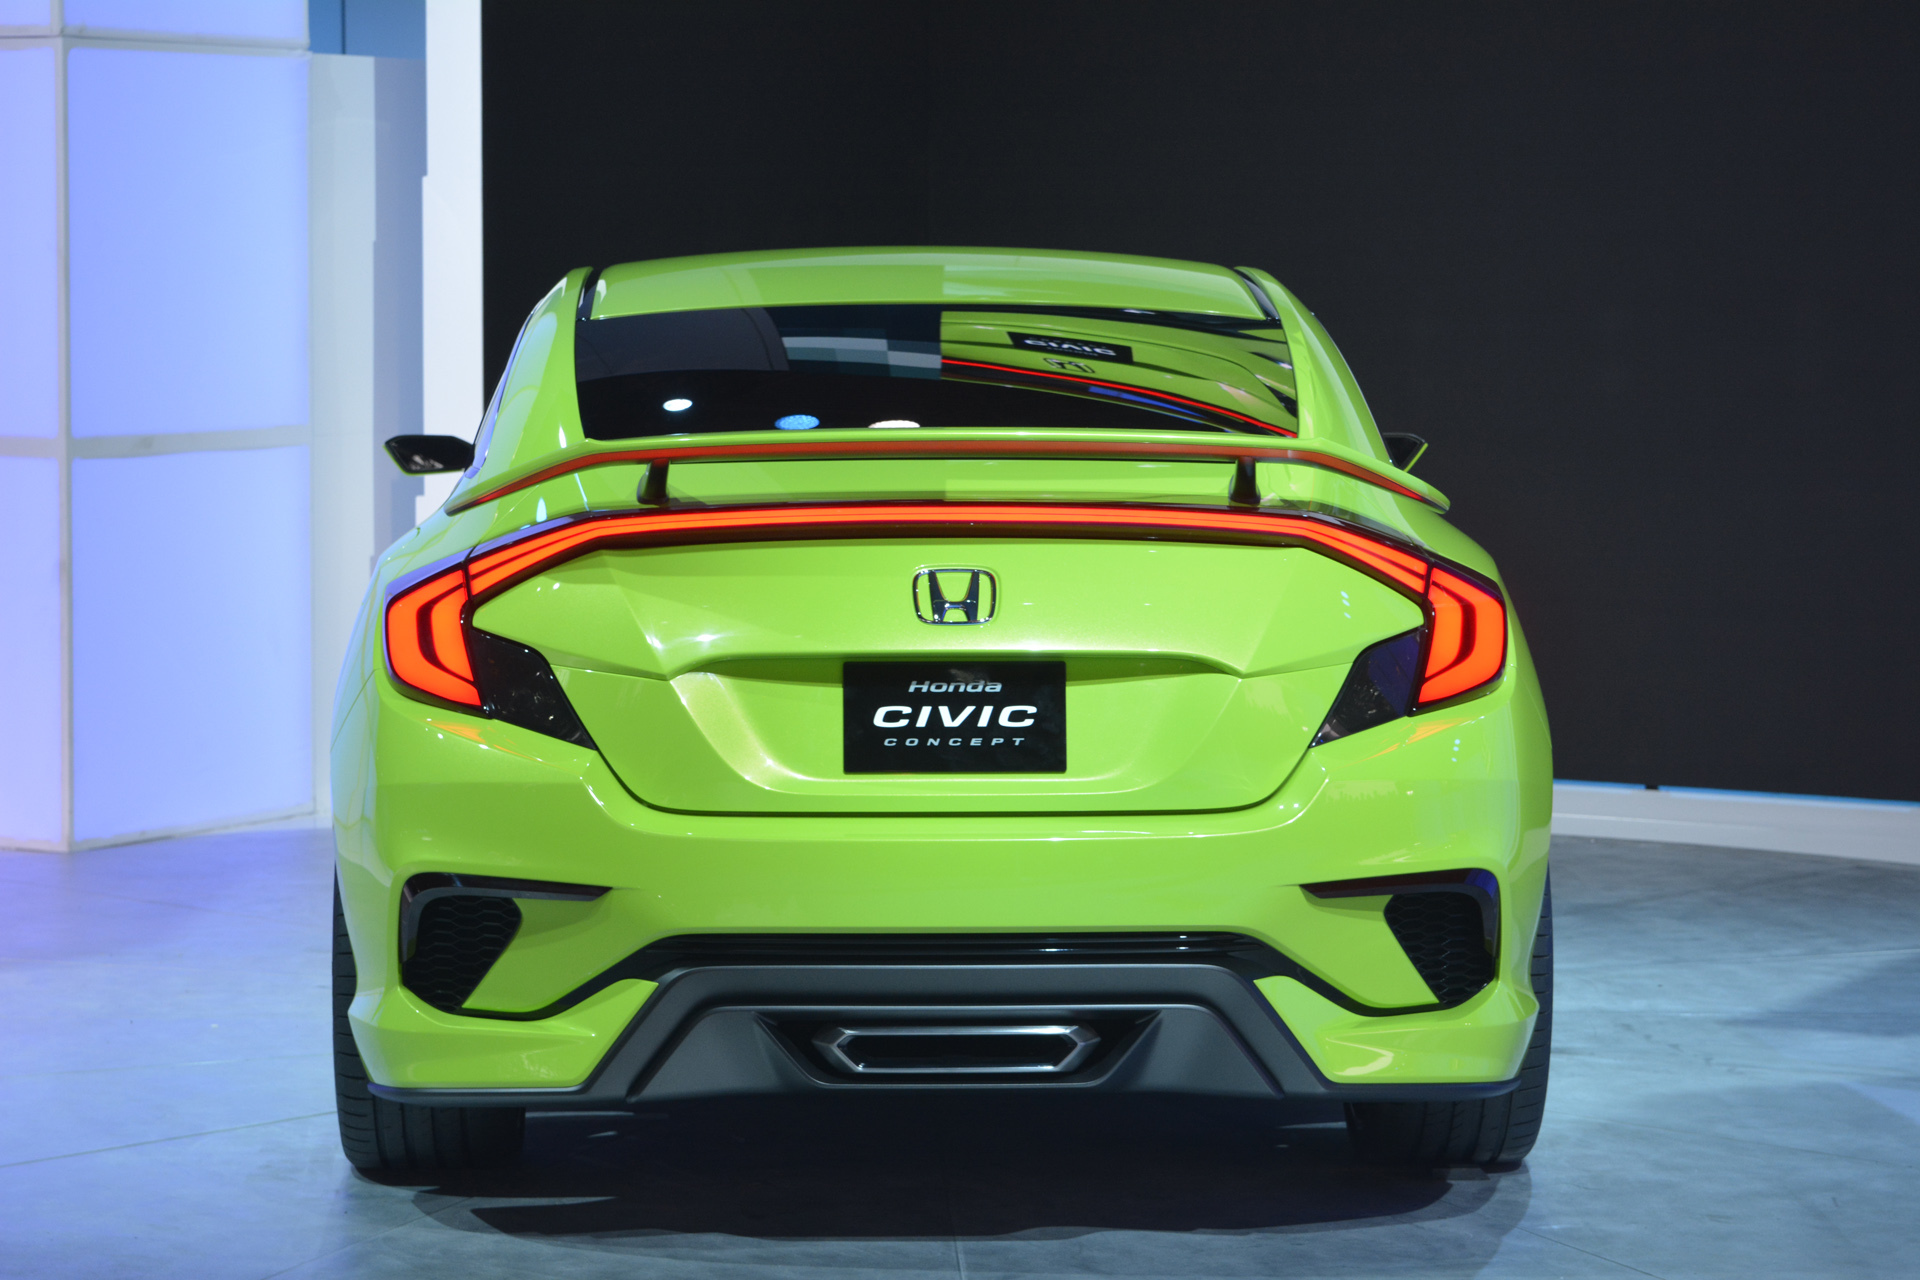 2016 Honda Civic Release Date >> Honda Civic Turbo Charged Concept Revealed At The NY Auto Show In Neon Green - PakWheels Blog